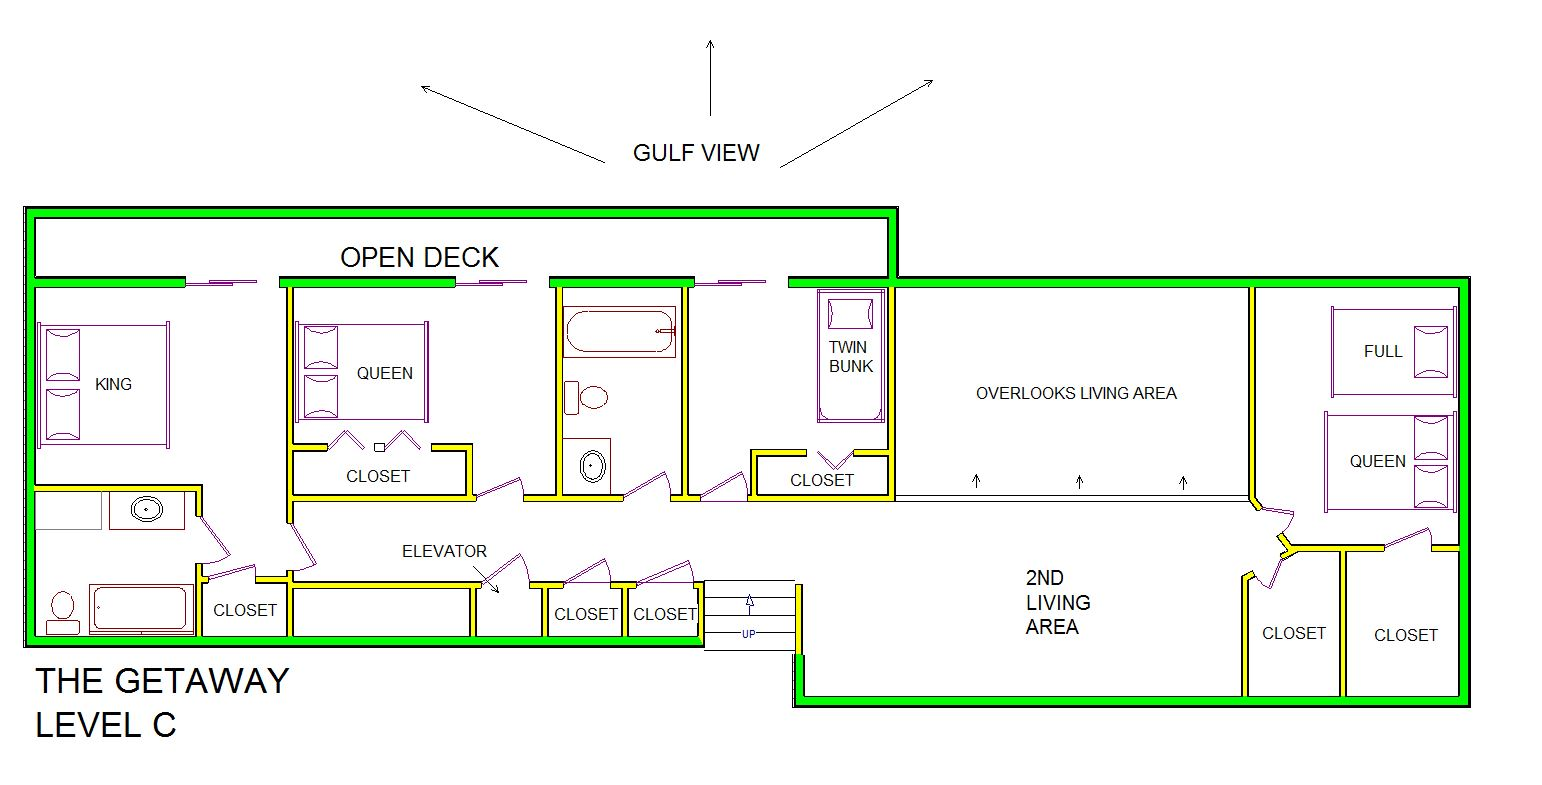 A level C layout view of Sand 'N Sea's beachfront house vacation rental in Galveston named The Getaway